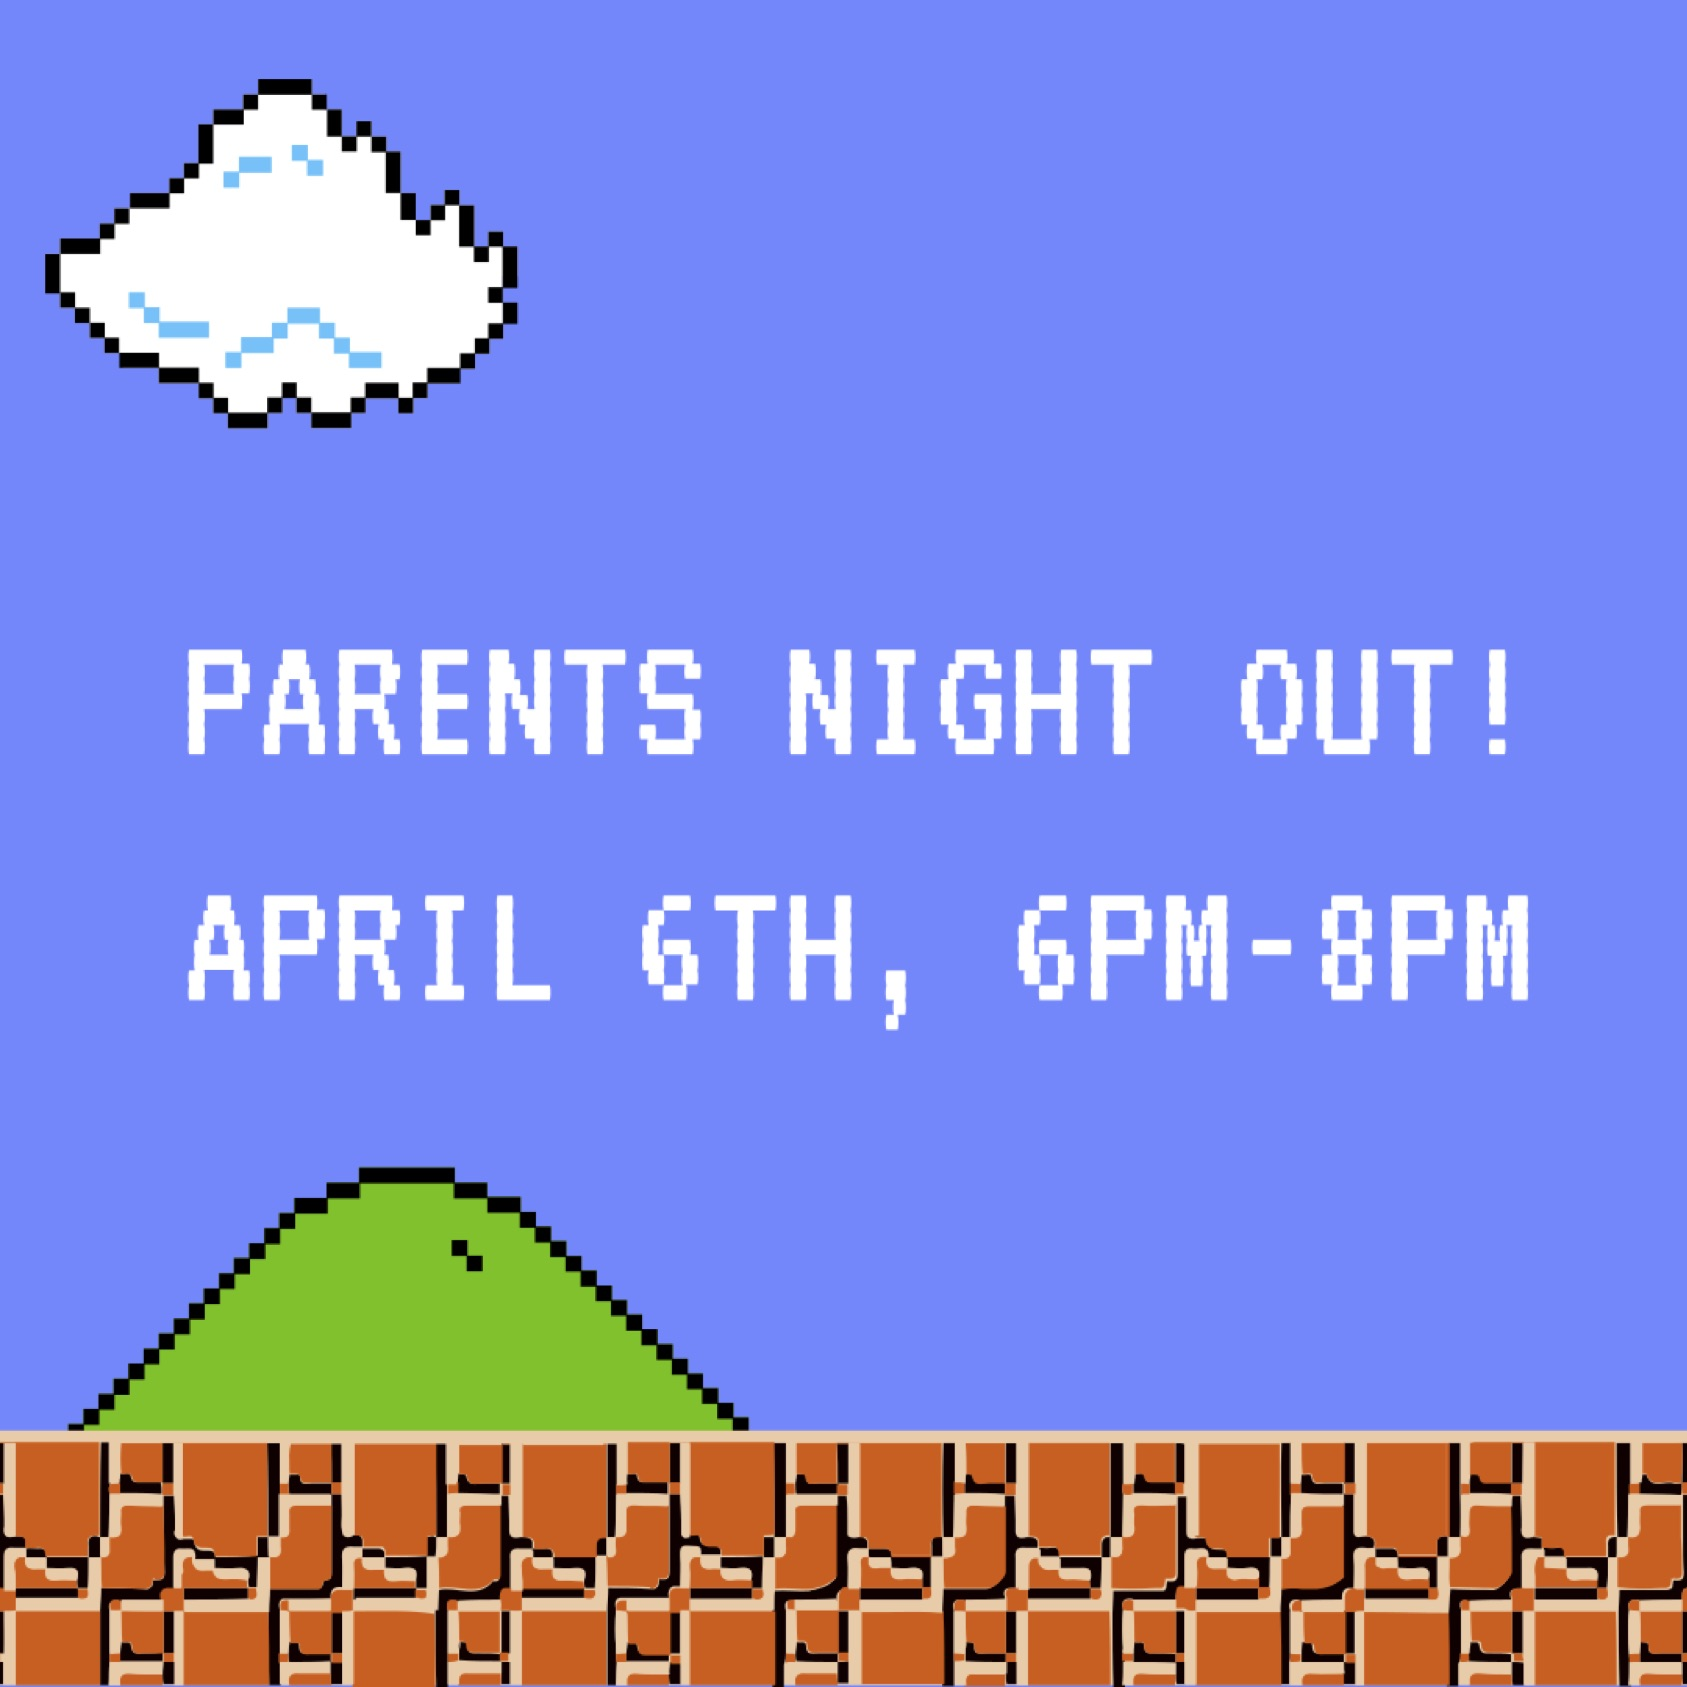 PARENTS NIGHT OUT, APRIL 6TH, 6-8p! Free Event! We'll be having a blast at the Grey Eagle Arena, 17 White Pine Dr. Black Mountain. Food, Bounce House, Games and more! Drop off or Hang out! Invite a friend! Pre-k thru 5th Grade. Let Joshua know you'll be there, joshua@mvcnc.com.